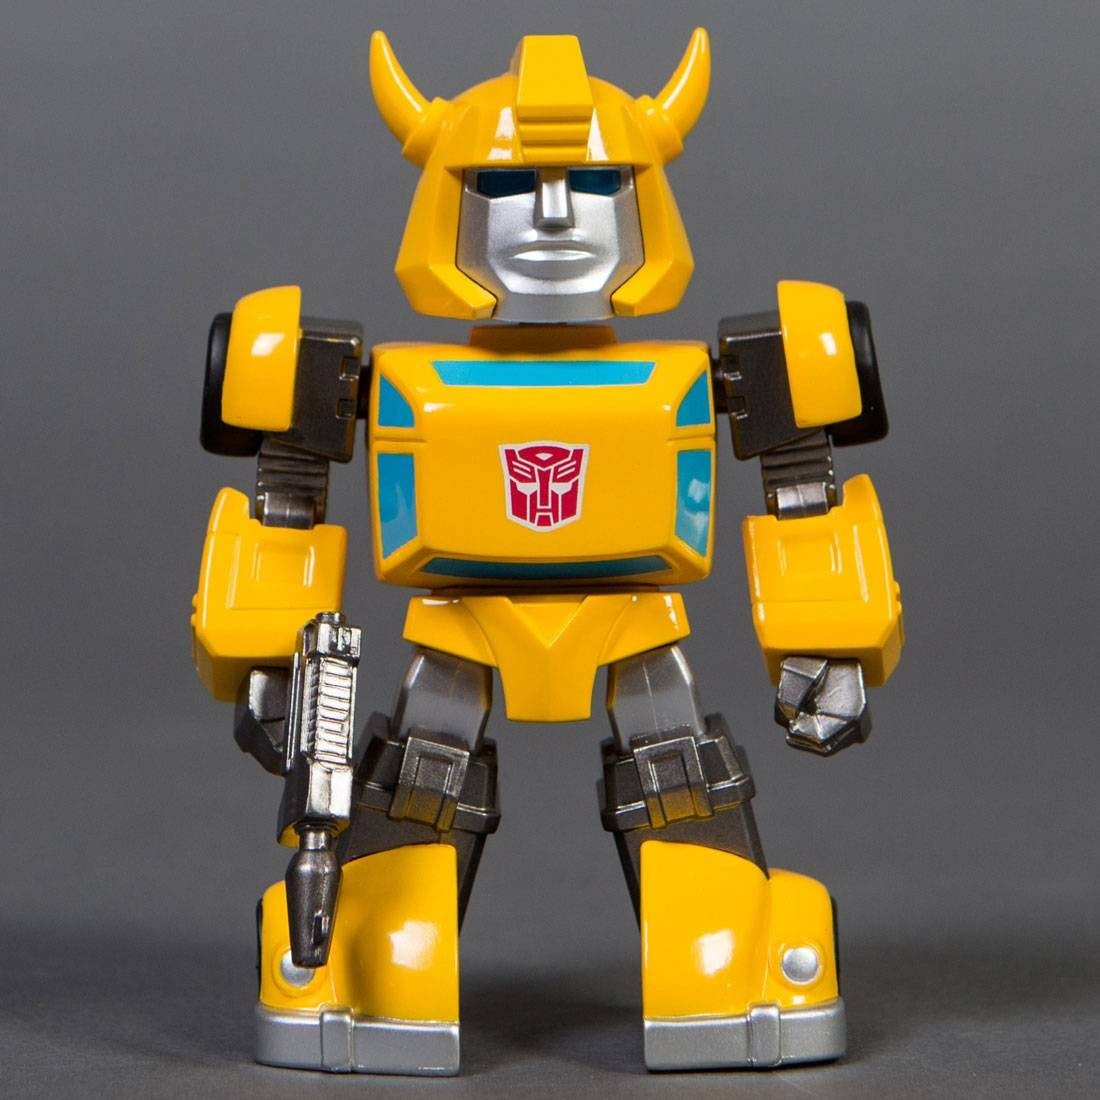 BAIT x Transformers x Switch Collectibles Bumblebee 4.5 Inch Figure - Original Edition